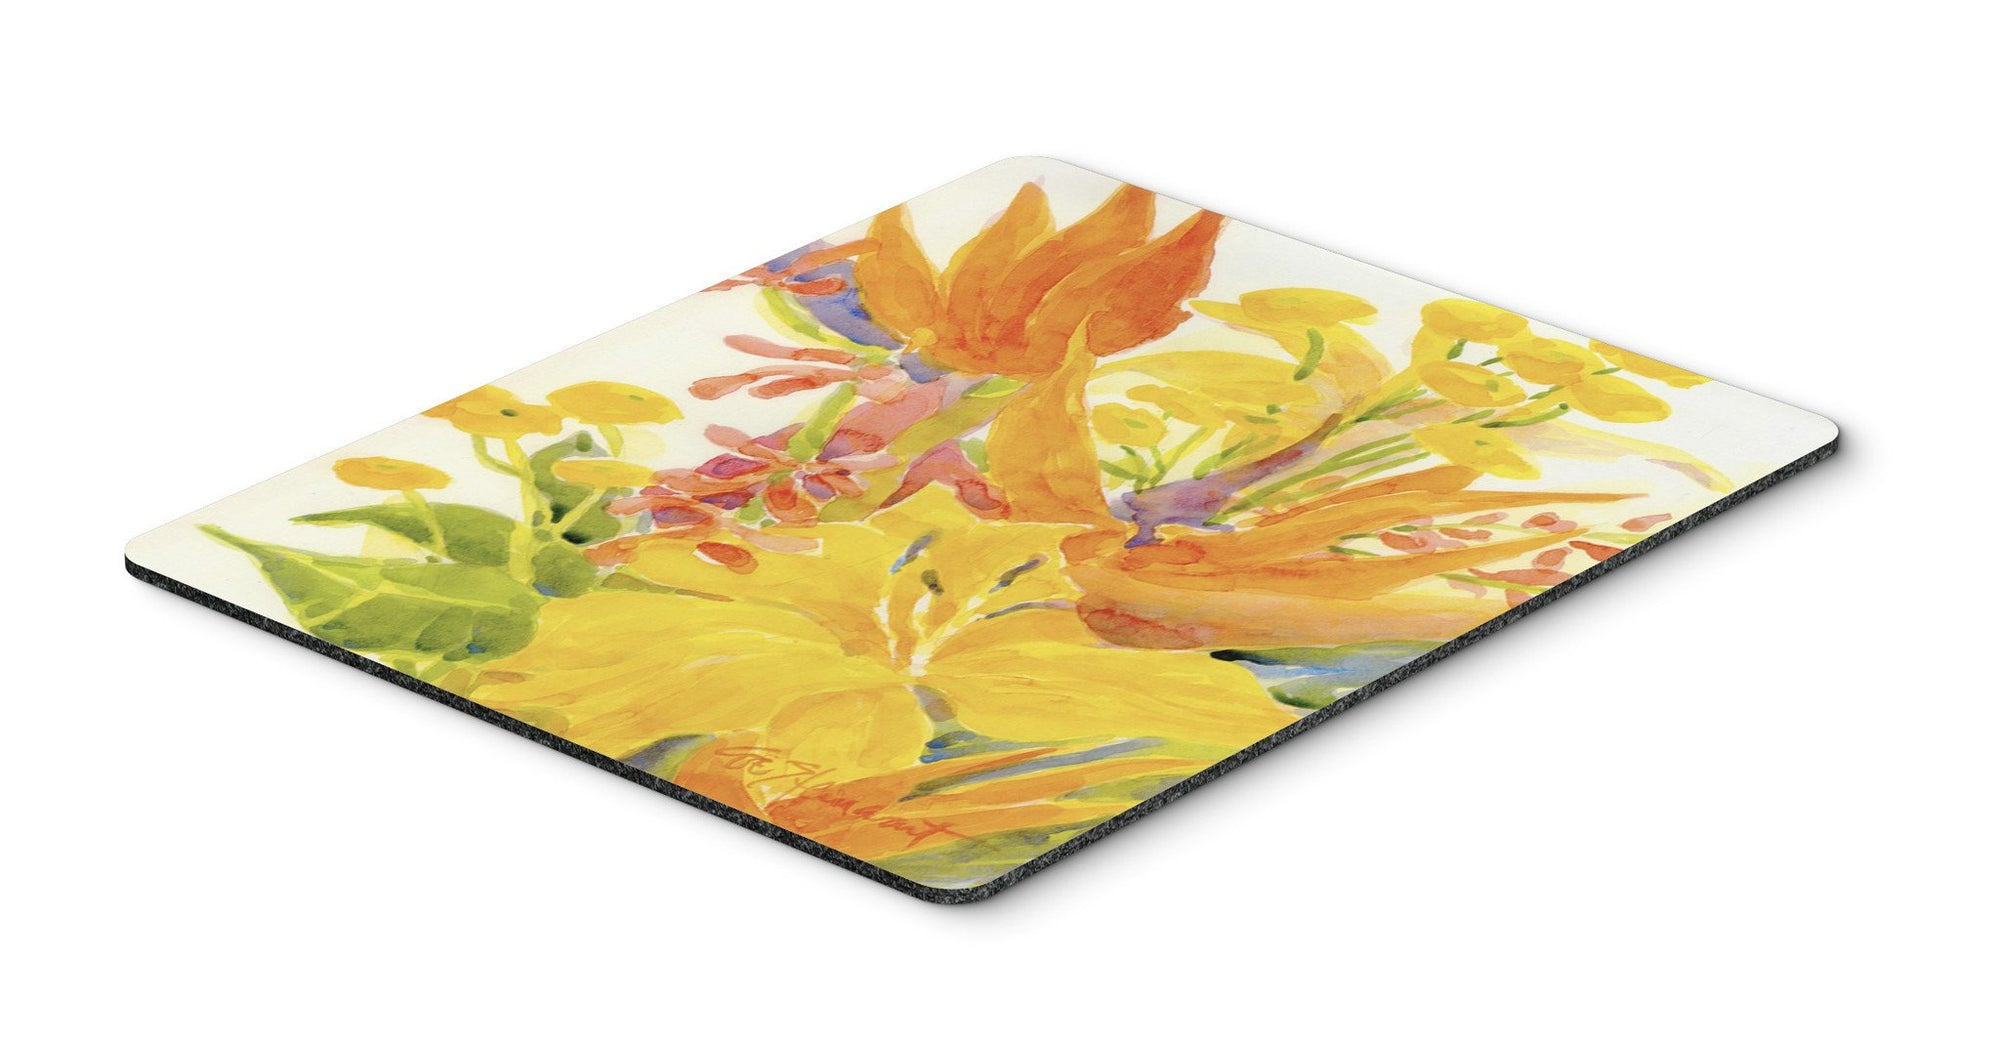 Flower - Bird of Paradise and Hibiscus  Mouse Pad, Hot Pad or Trivet by Caroline's Treasures